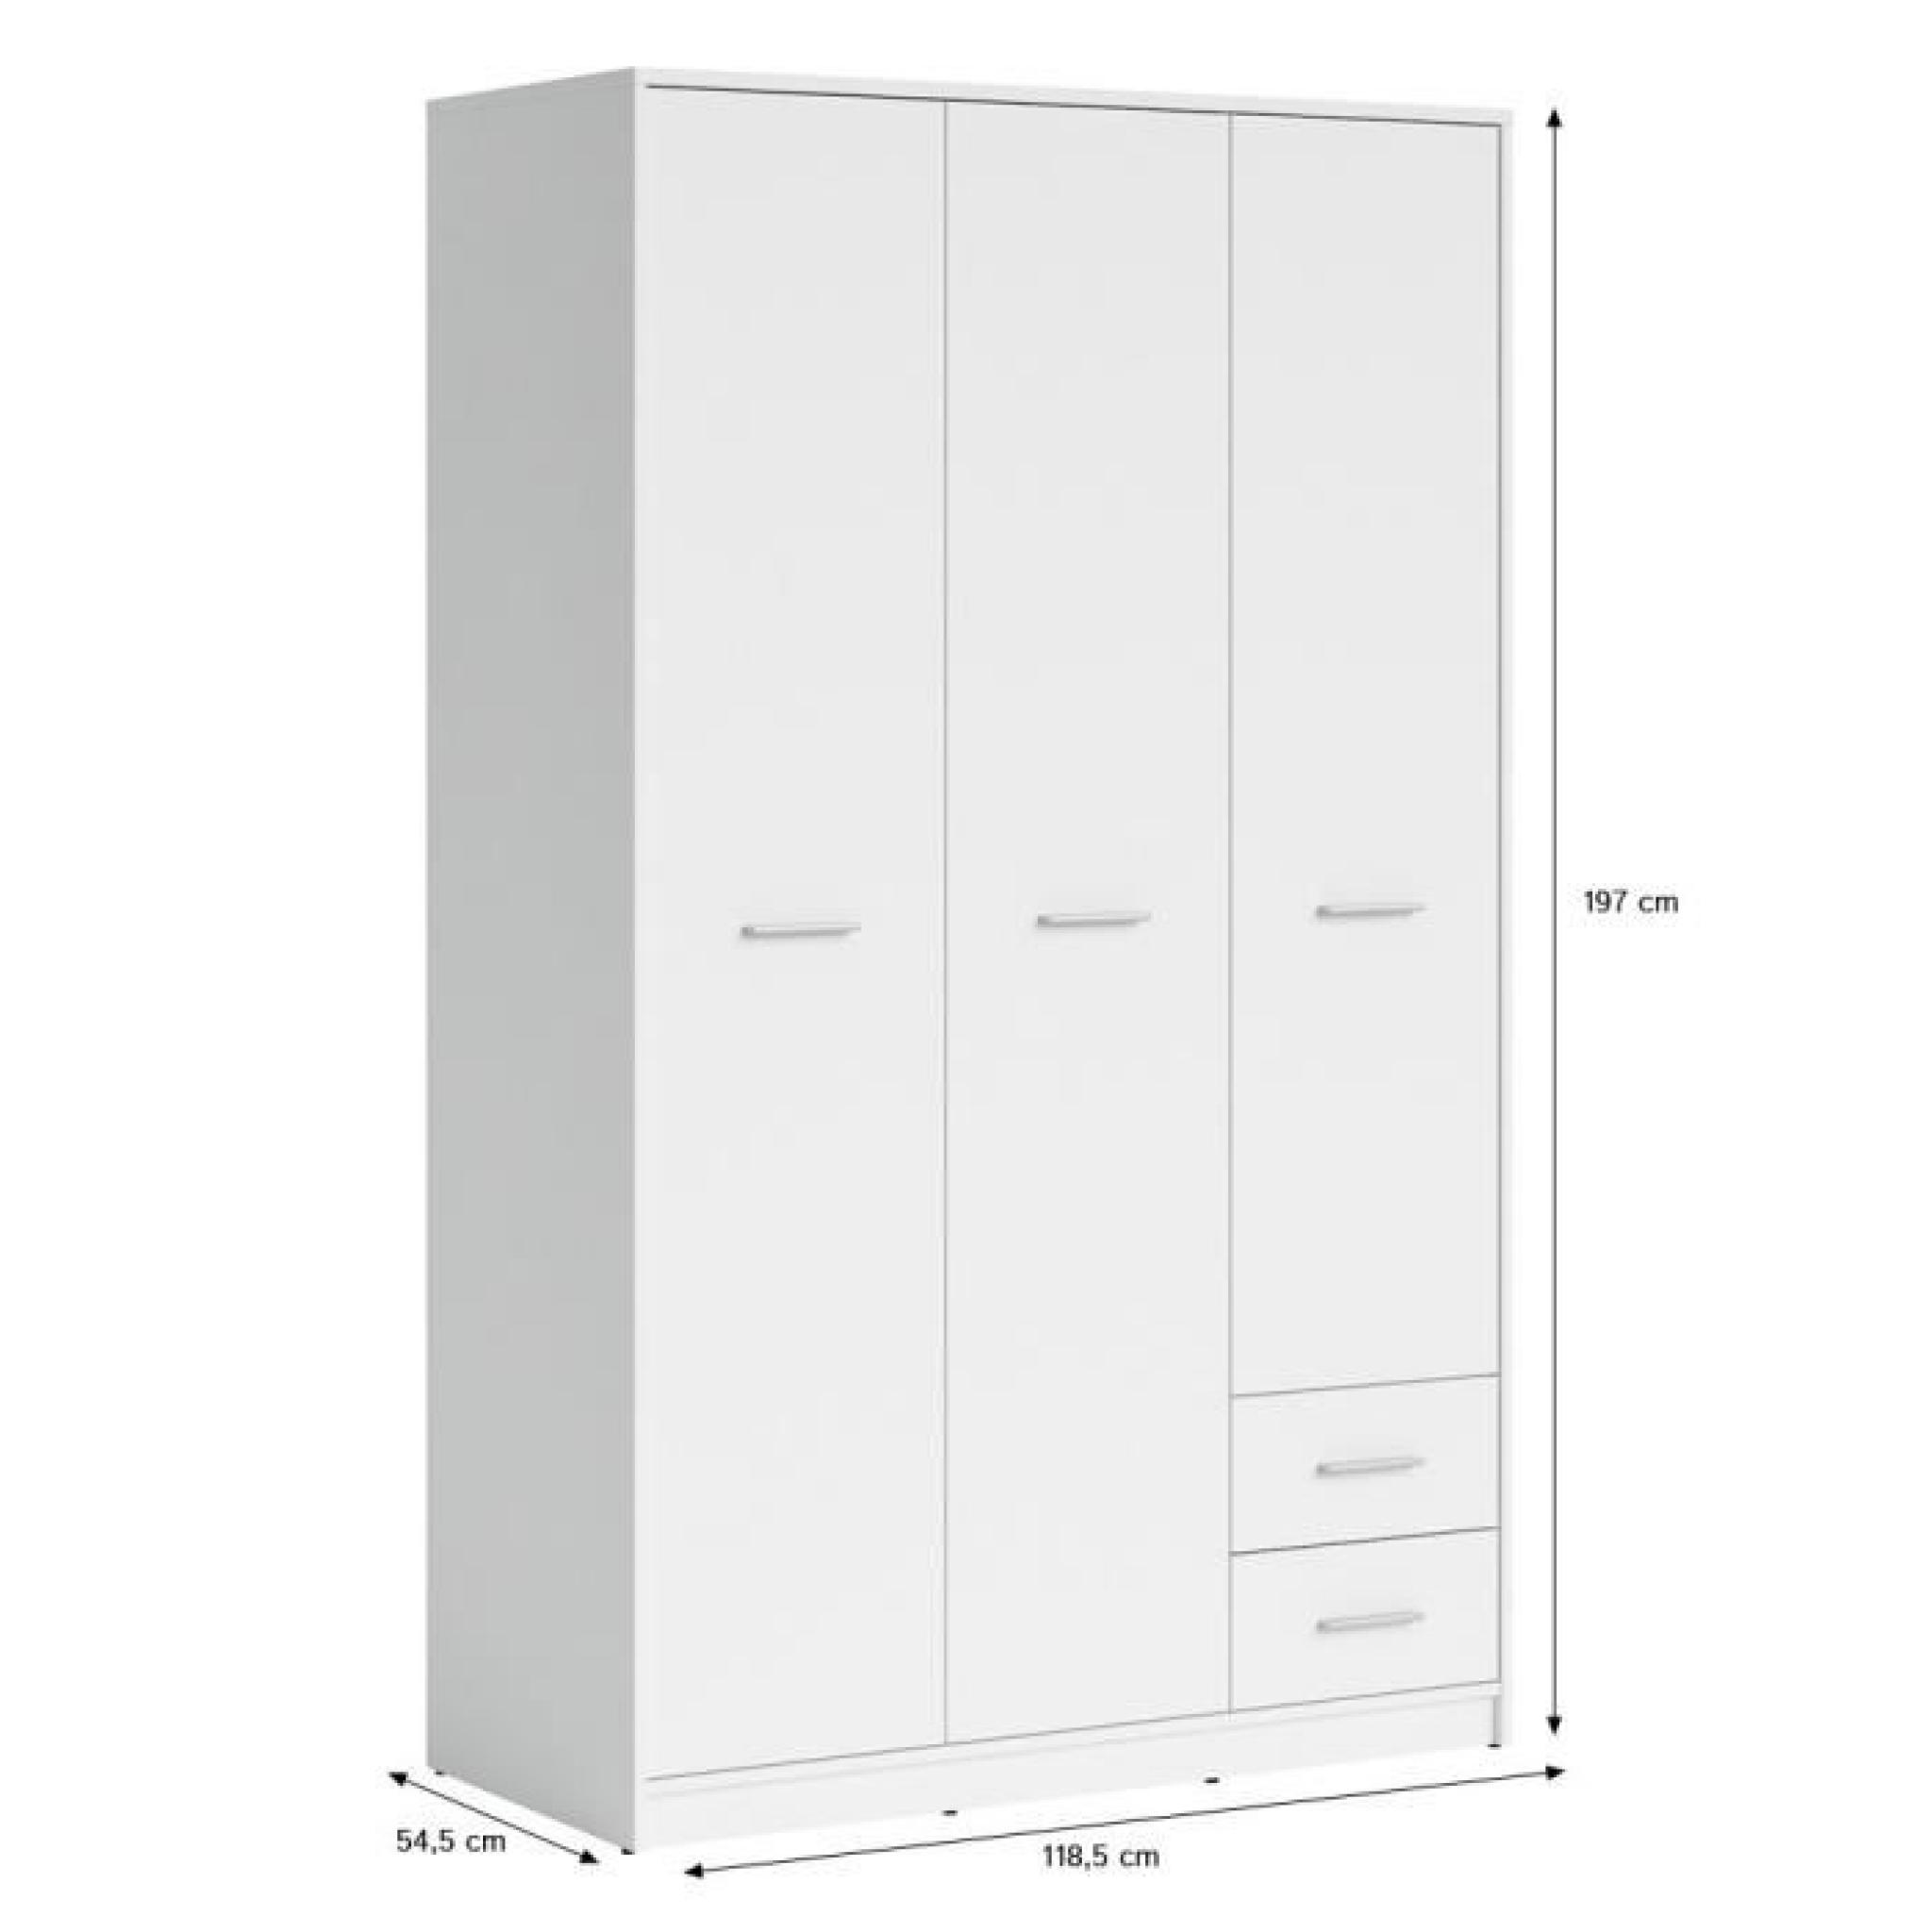 nepo armoire 3 portes 2 tiroirs blanche achat vente. Black Bedroom Furniture Sets. Home Design Ideas